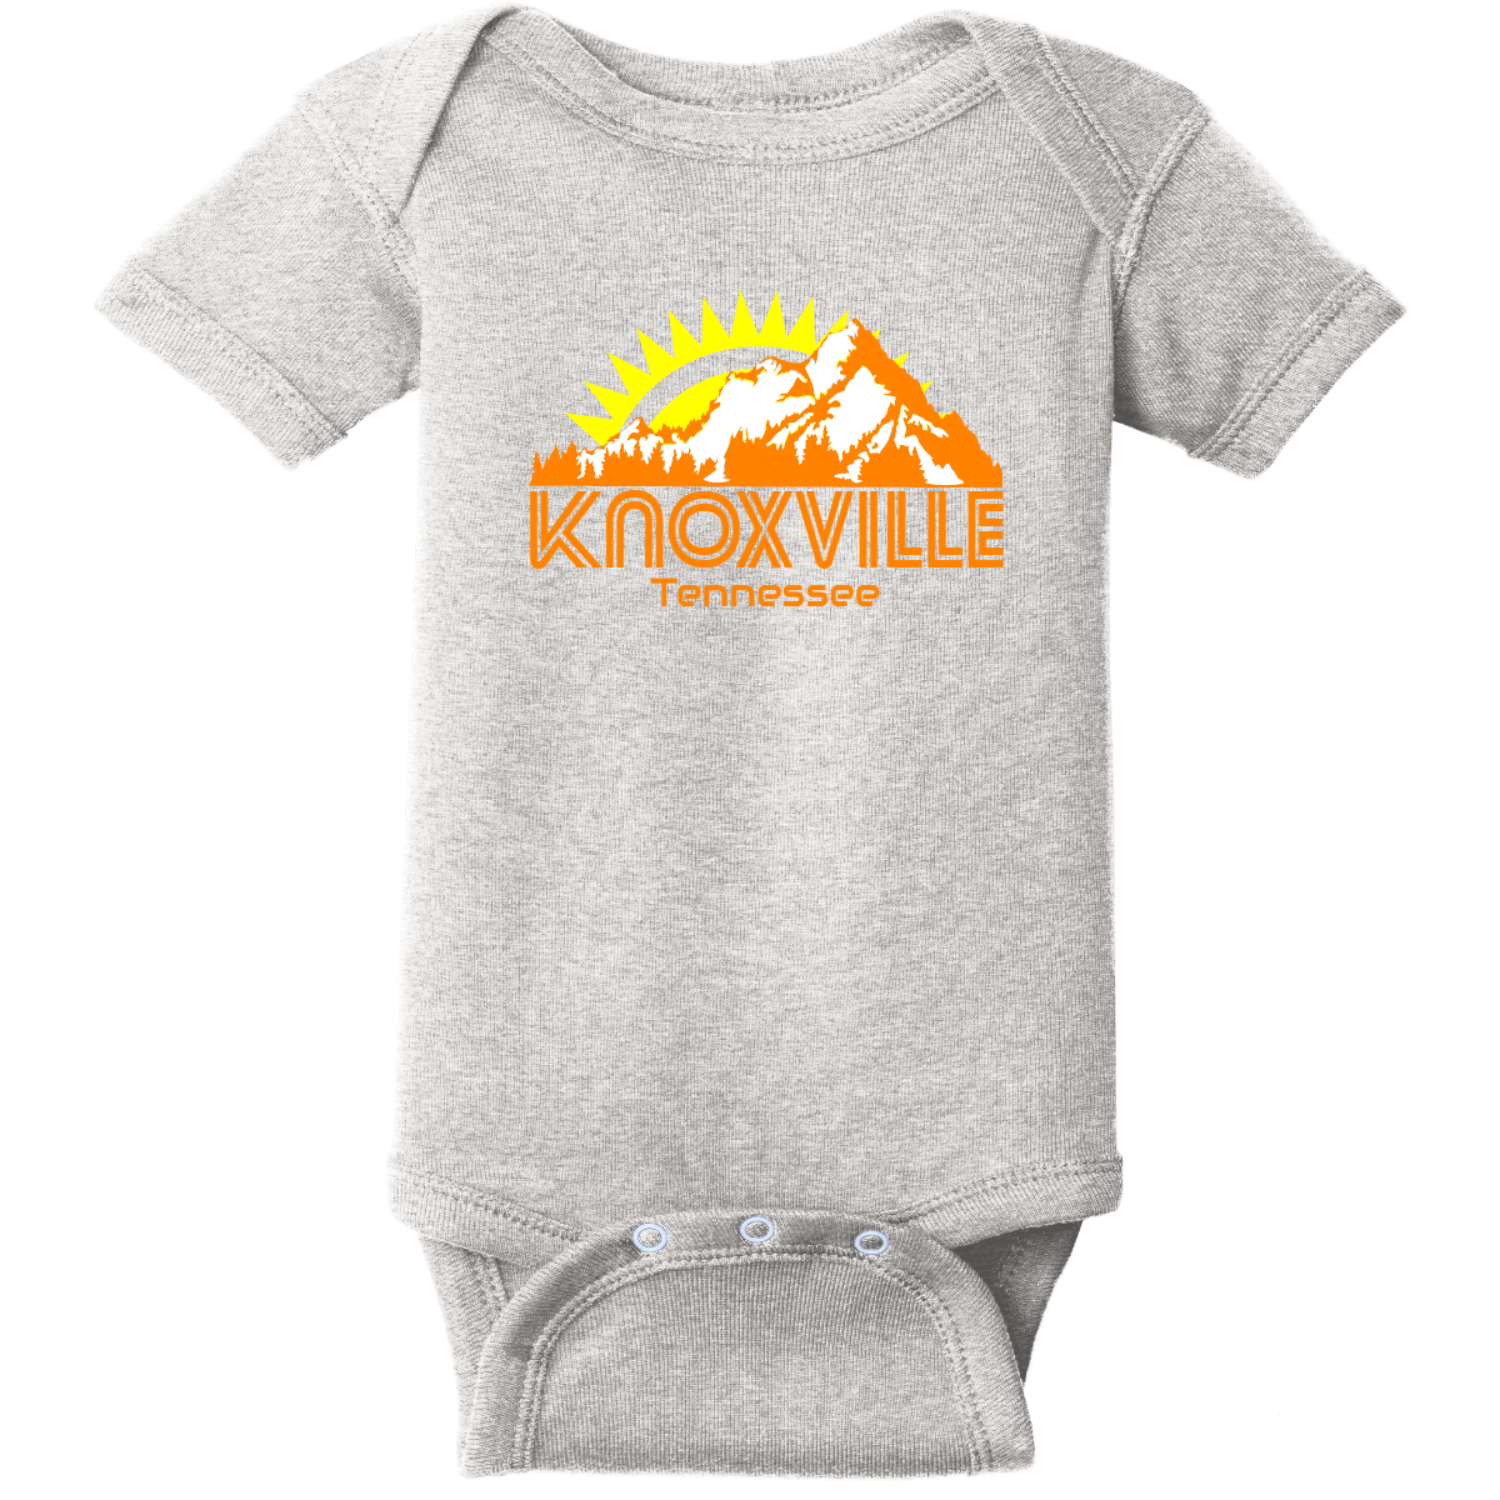 Knoxville Tennessee Mountains Baby Creeper Heather Rabbit Skins Infant Short Sleeve Infant Rib Bodysuit RS4400